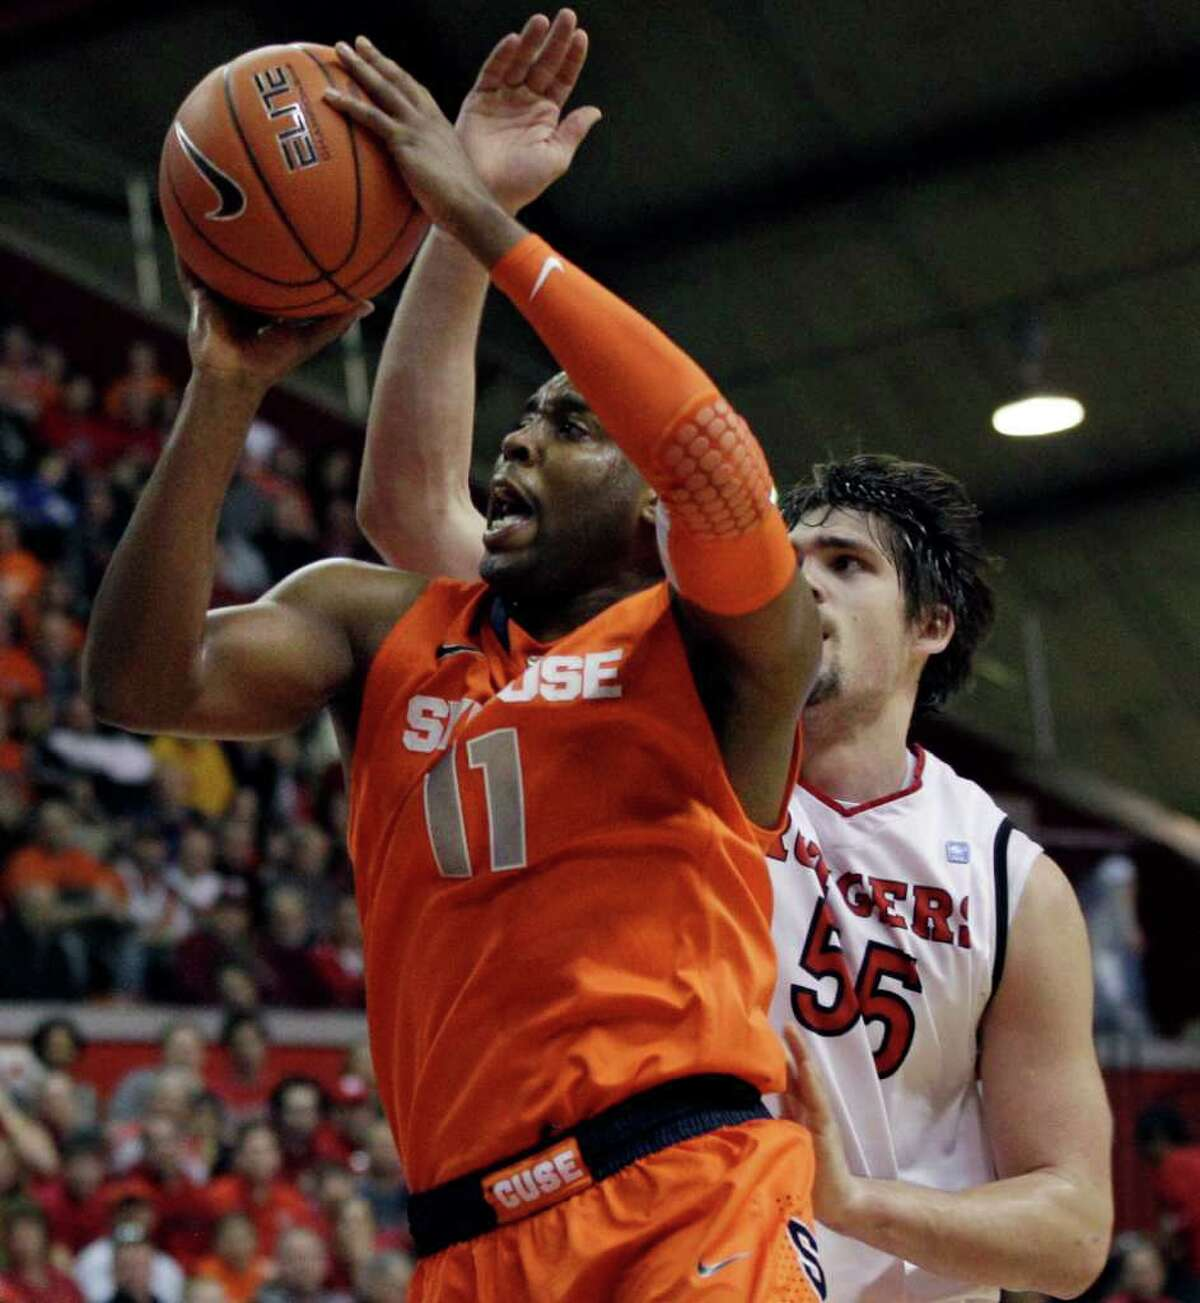 Syracuse's Scoop Jardine (11) takes a shot in front of Rutgers' Gilvydas Biruta, (55) of Lithuania, during the first half of an NCAA college basketball game in Piscataway, N.J., Sunday, Feb. 19, 2012. Syracuse won 74-64. (AP Photo/Mel Evans)